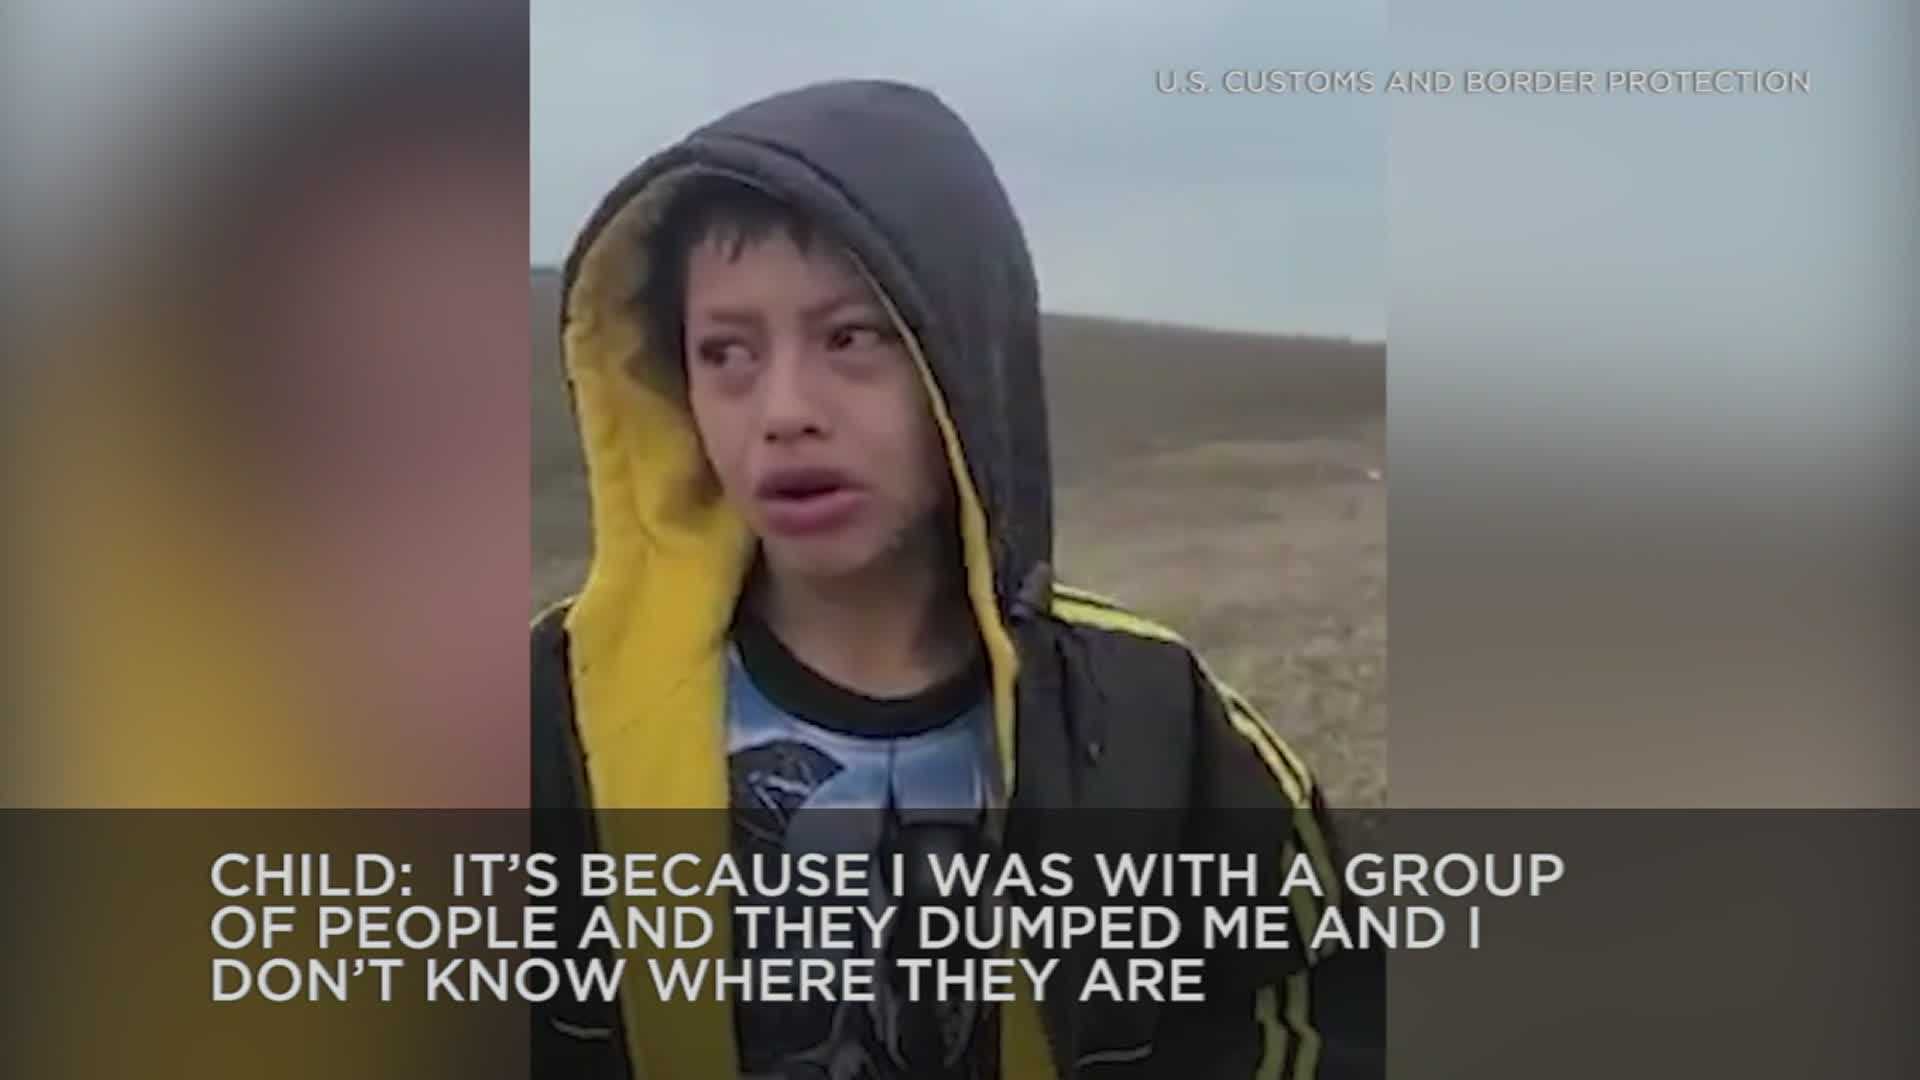 Migrant boy found wandering alone in Texas had been deported and kidnapped 3